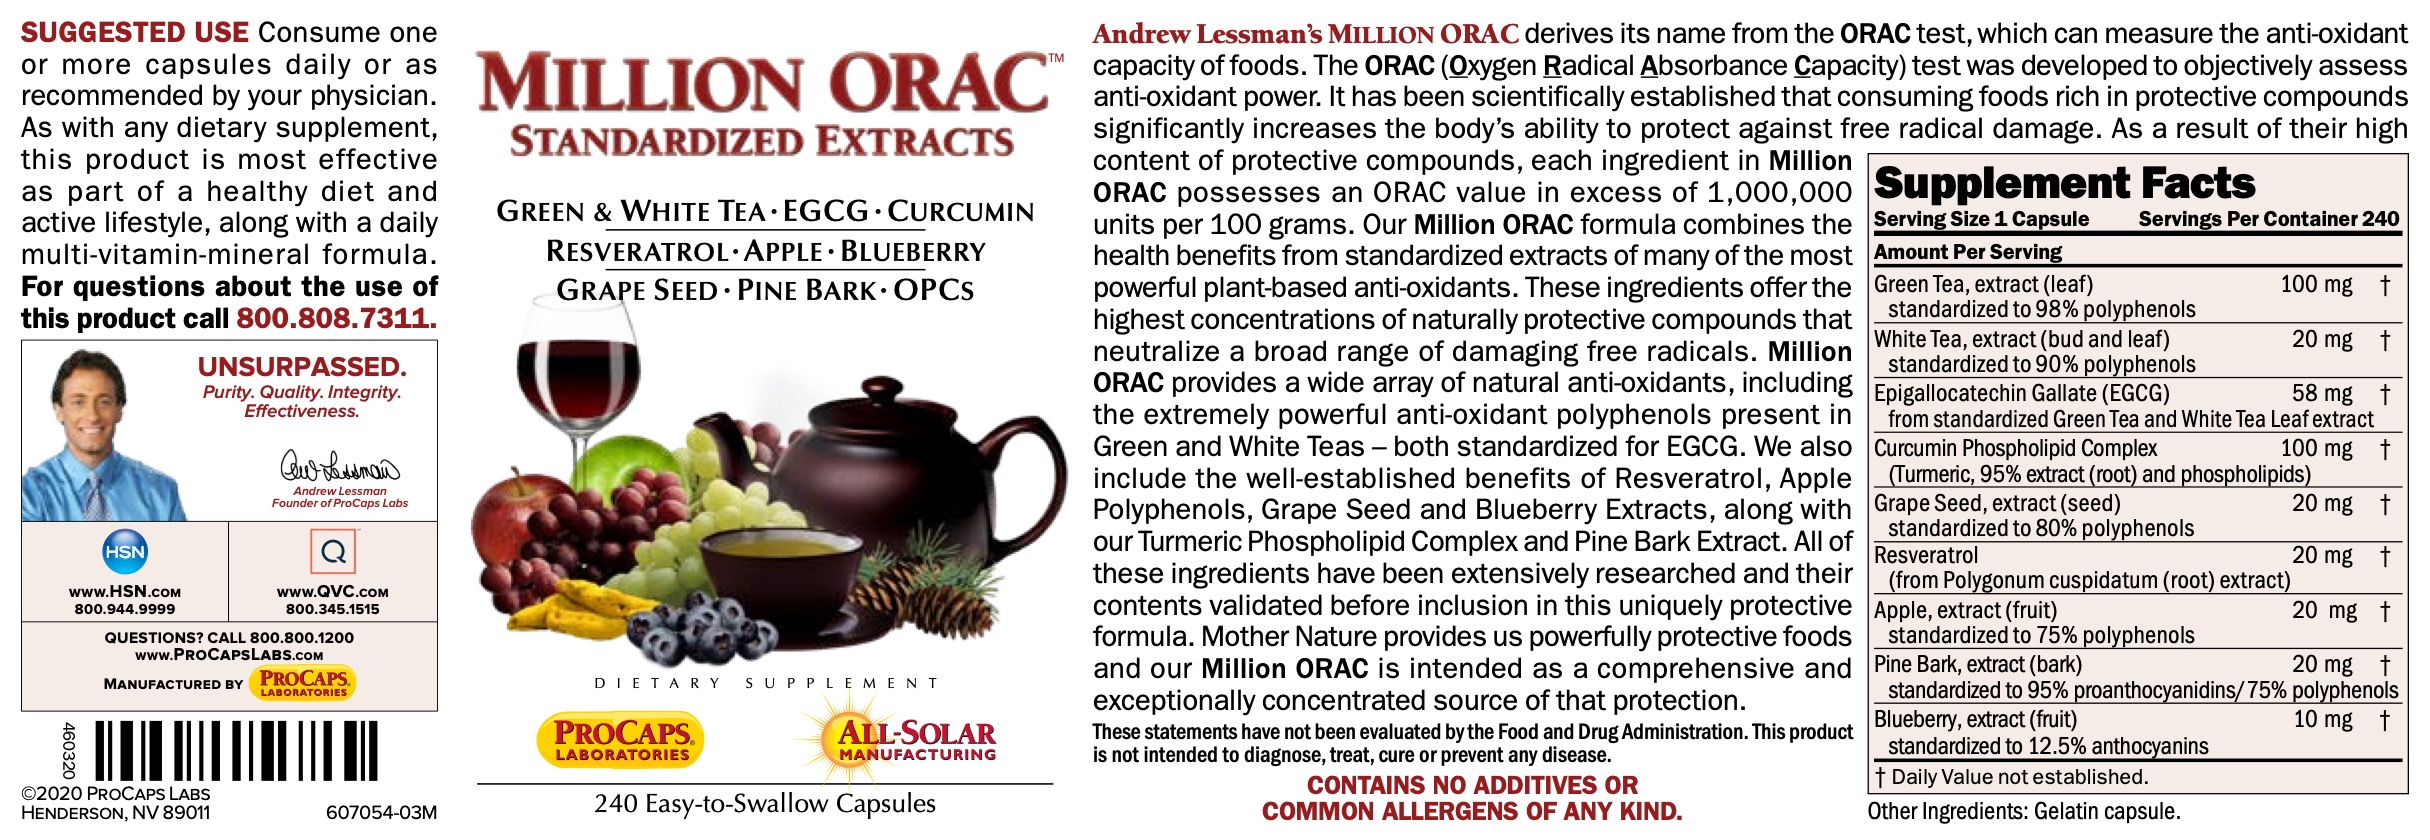 Million-ORAC-Capsules-Anti-oxidants